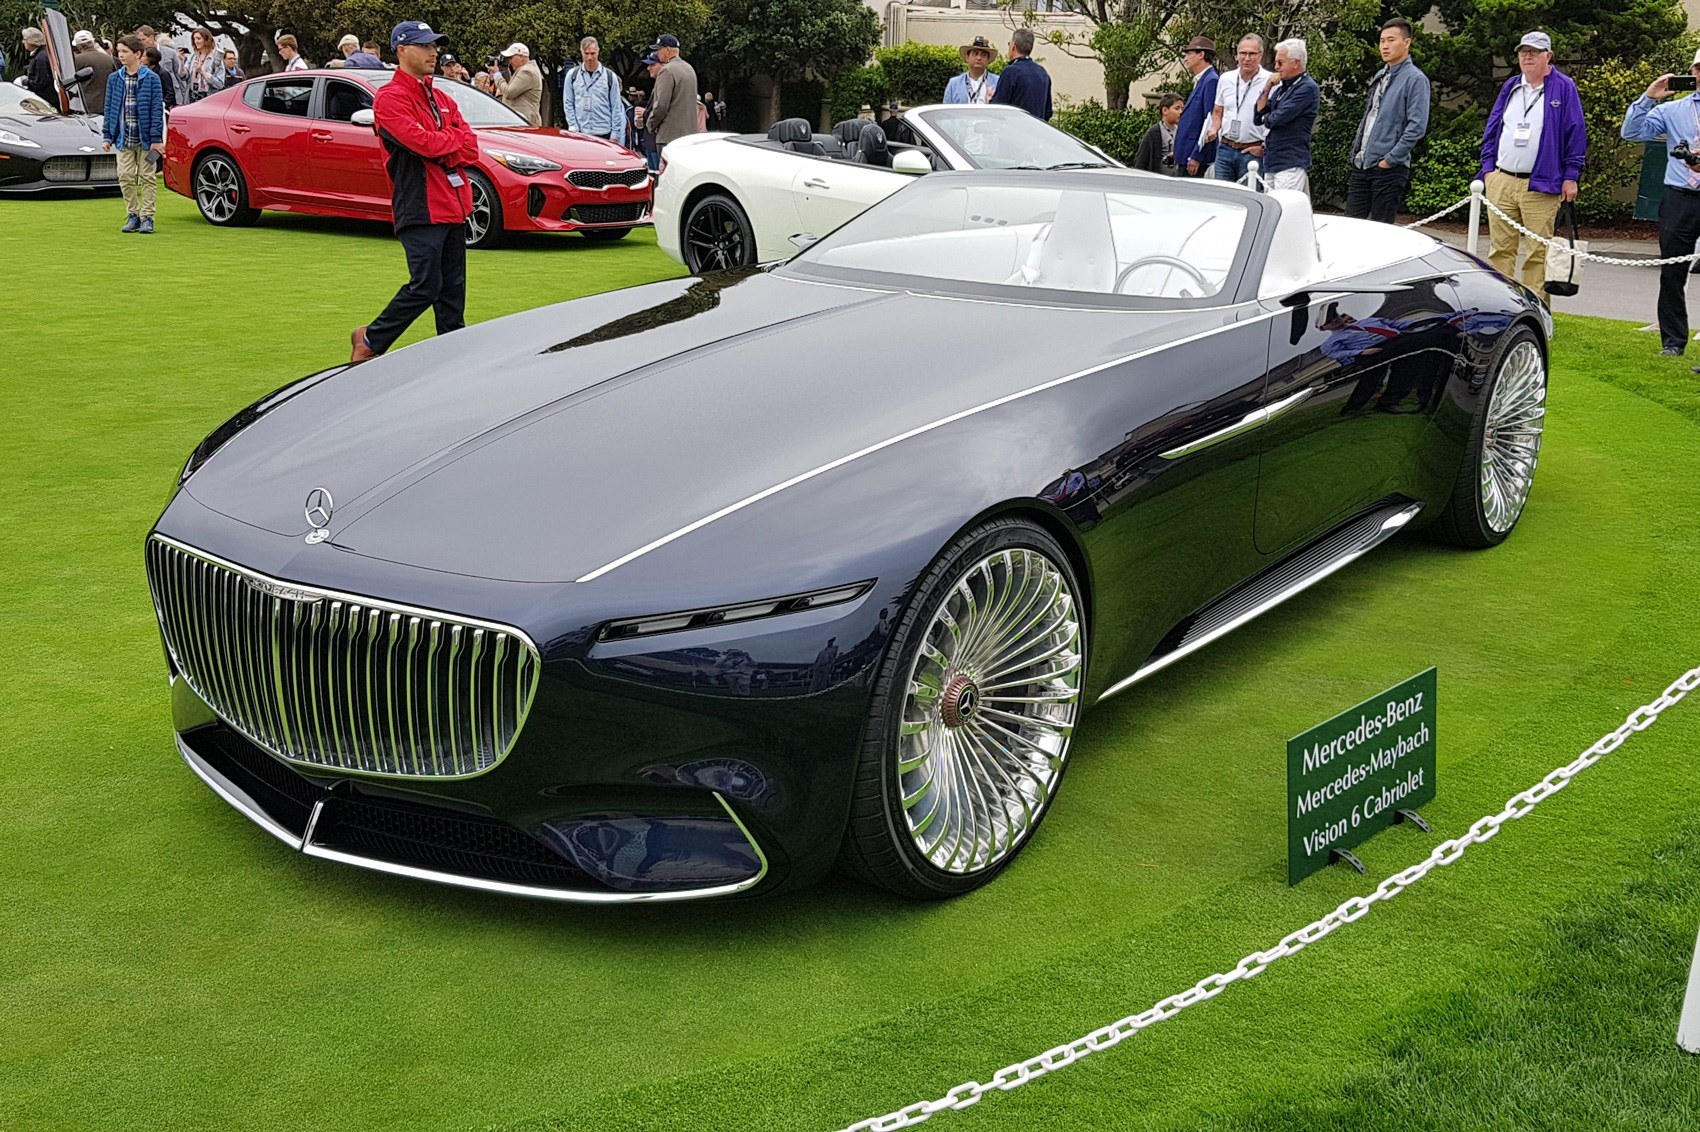 Gallery pebble beach concours d elegance 2017 in pictures - Mercedes car show ...